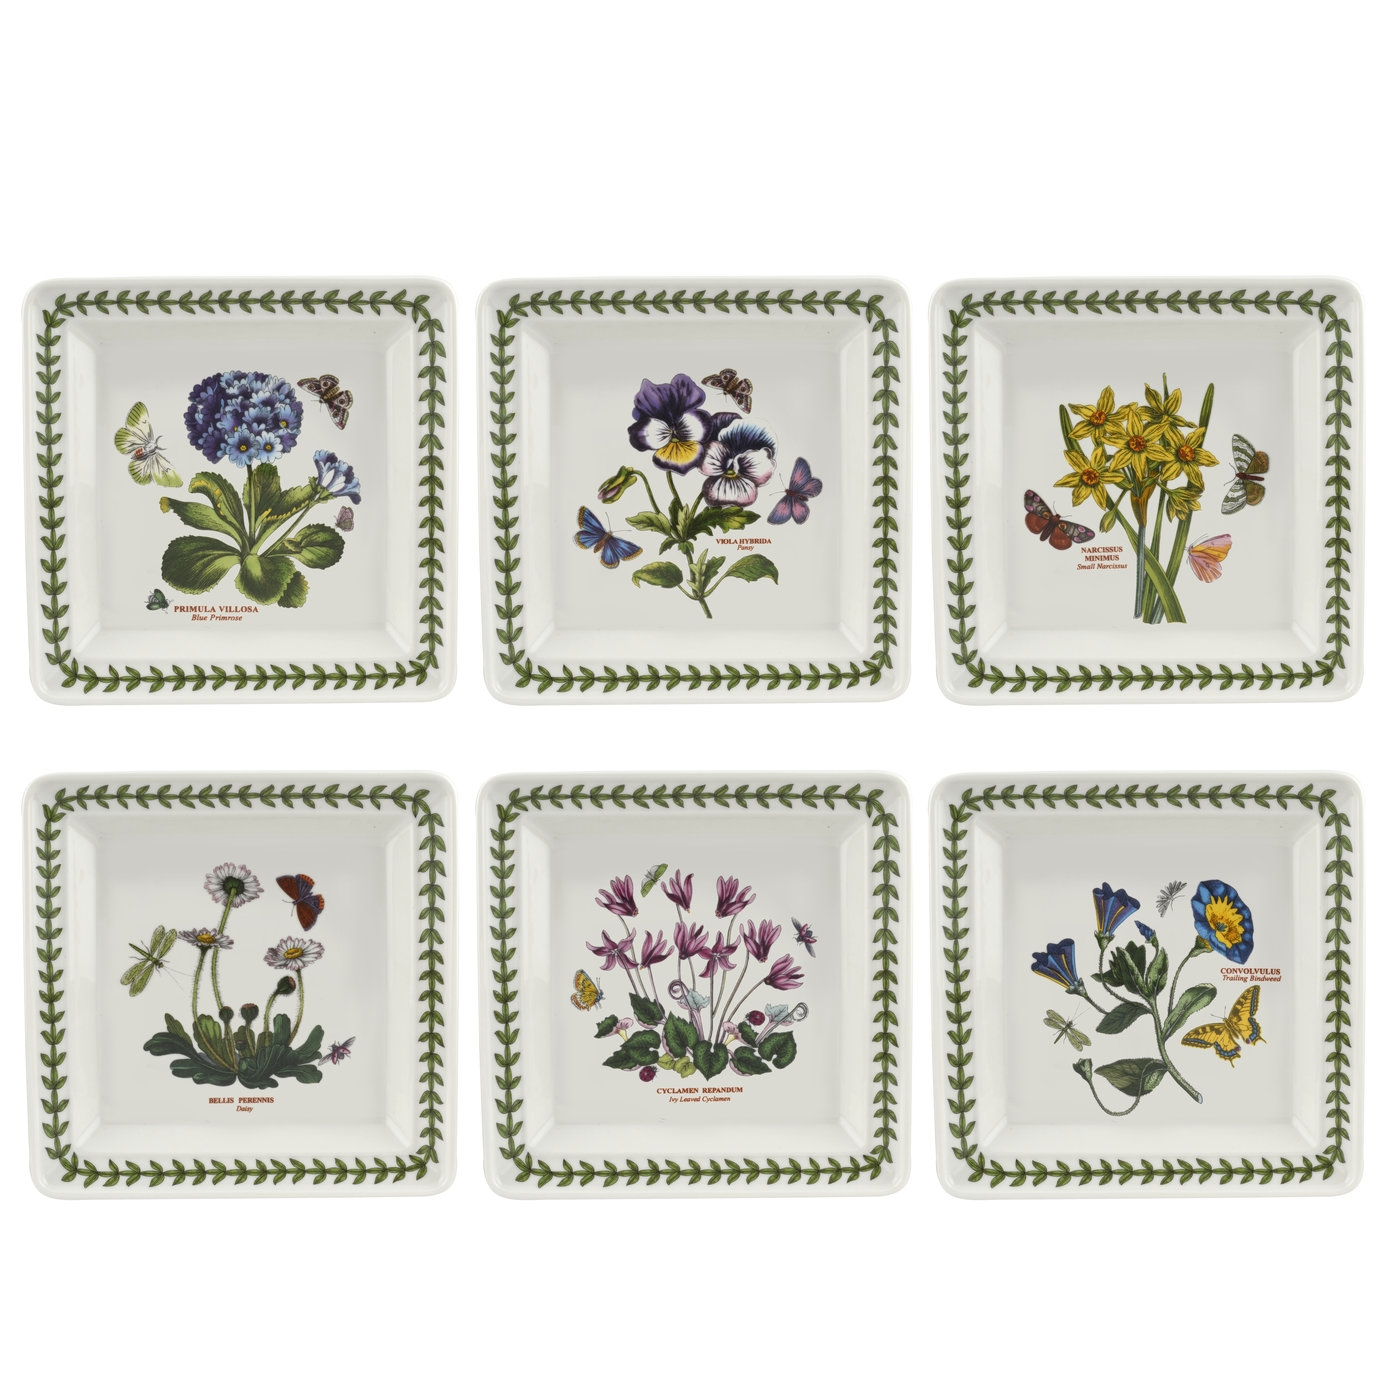 Botanic Garden 7 Inch Square Plate Set of 6 (Assorted Motifs) image number 0